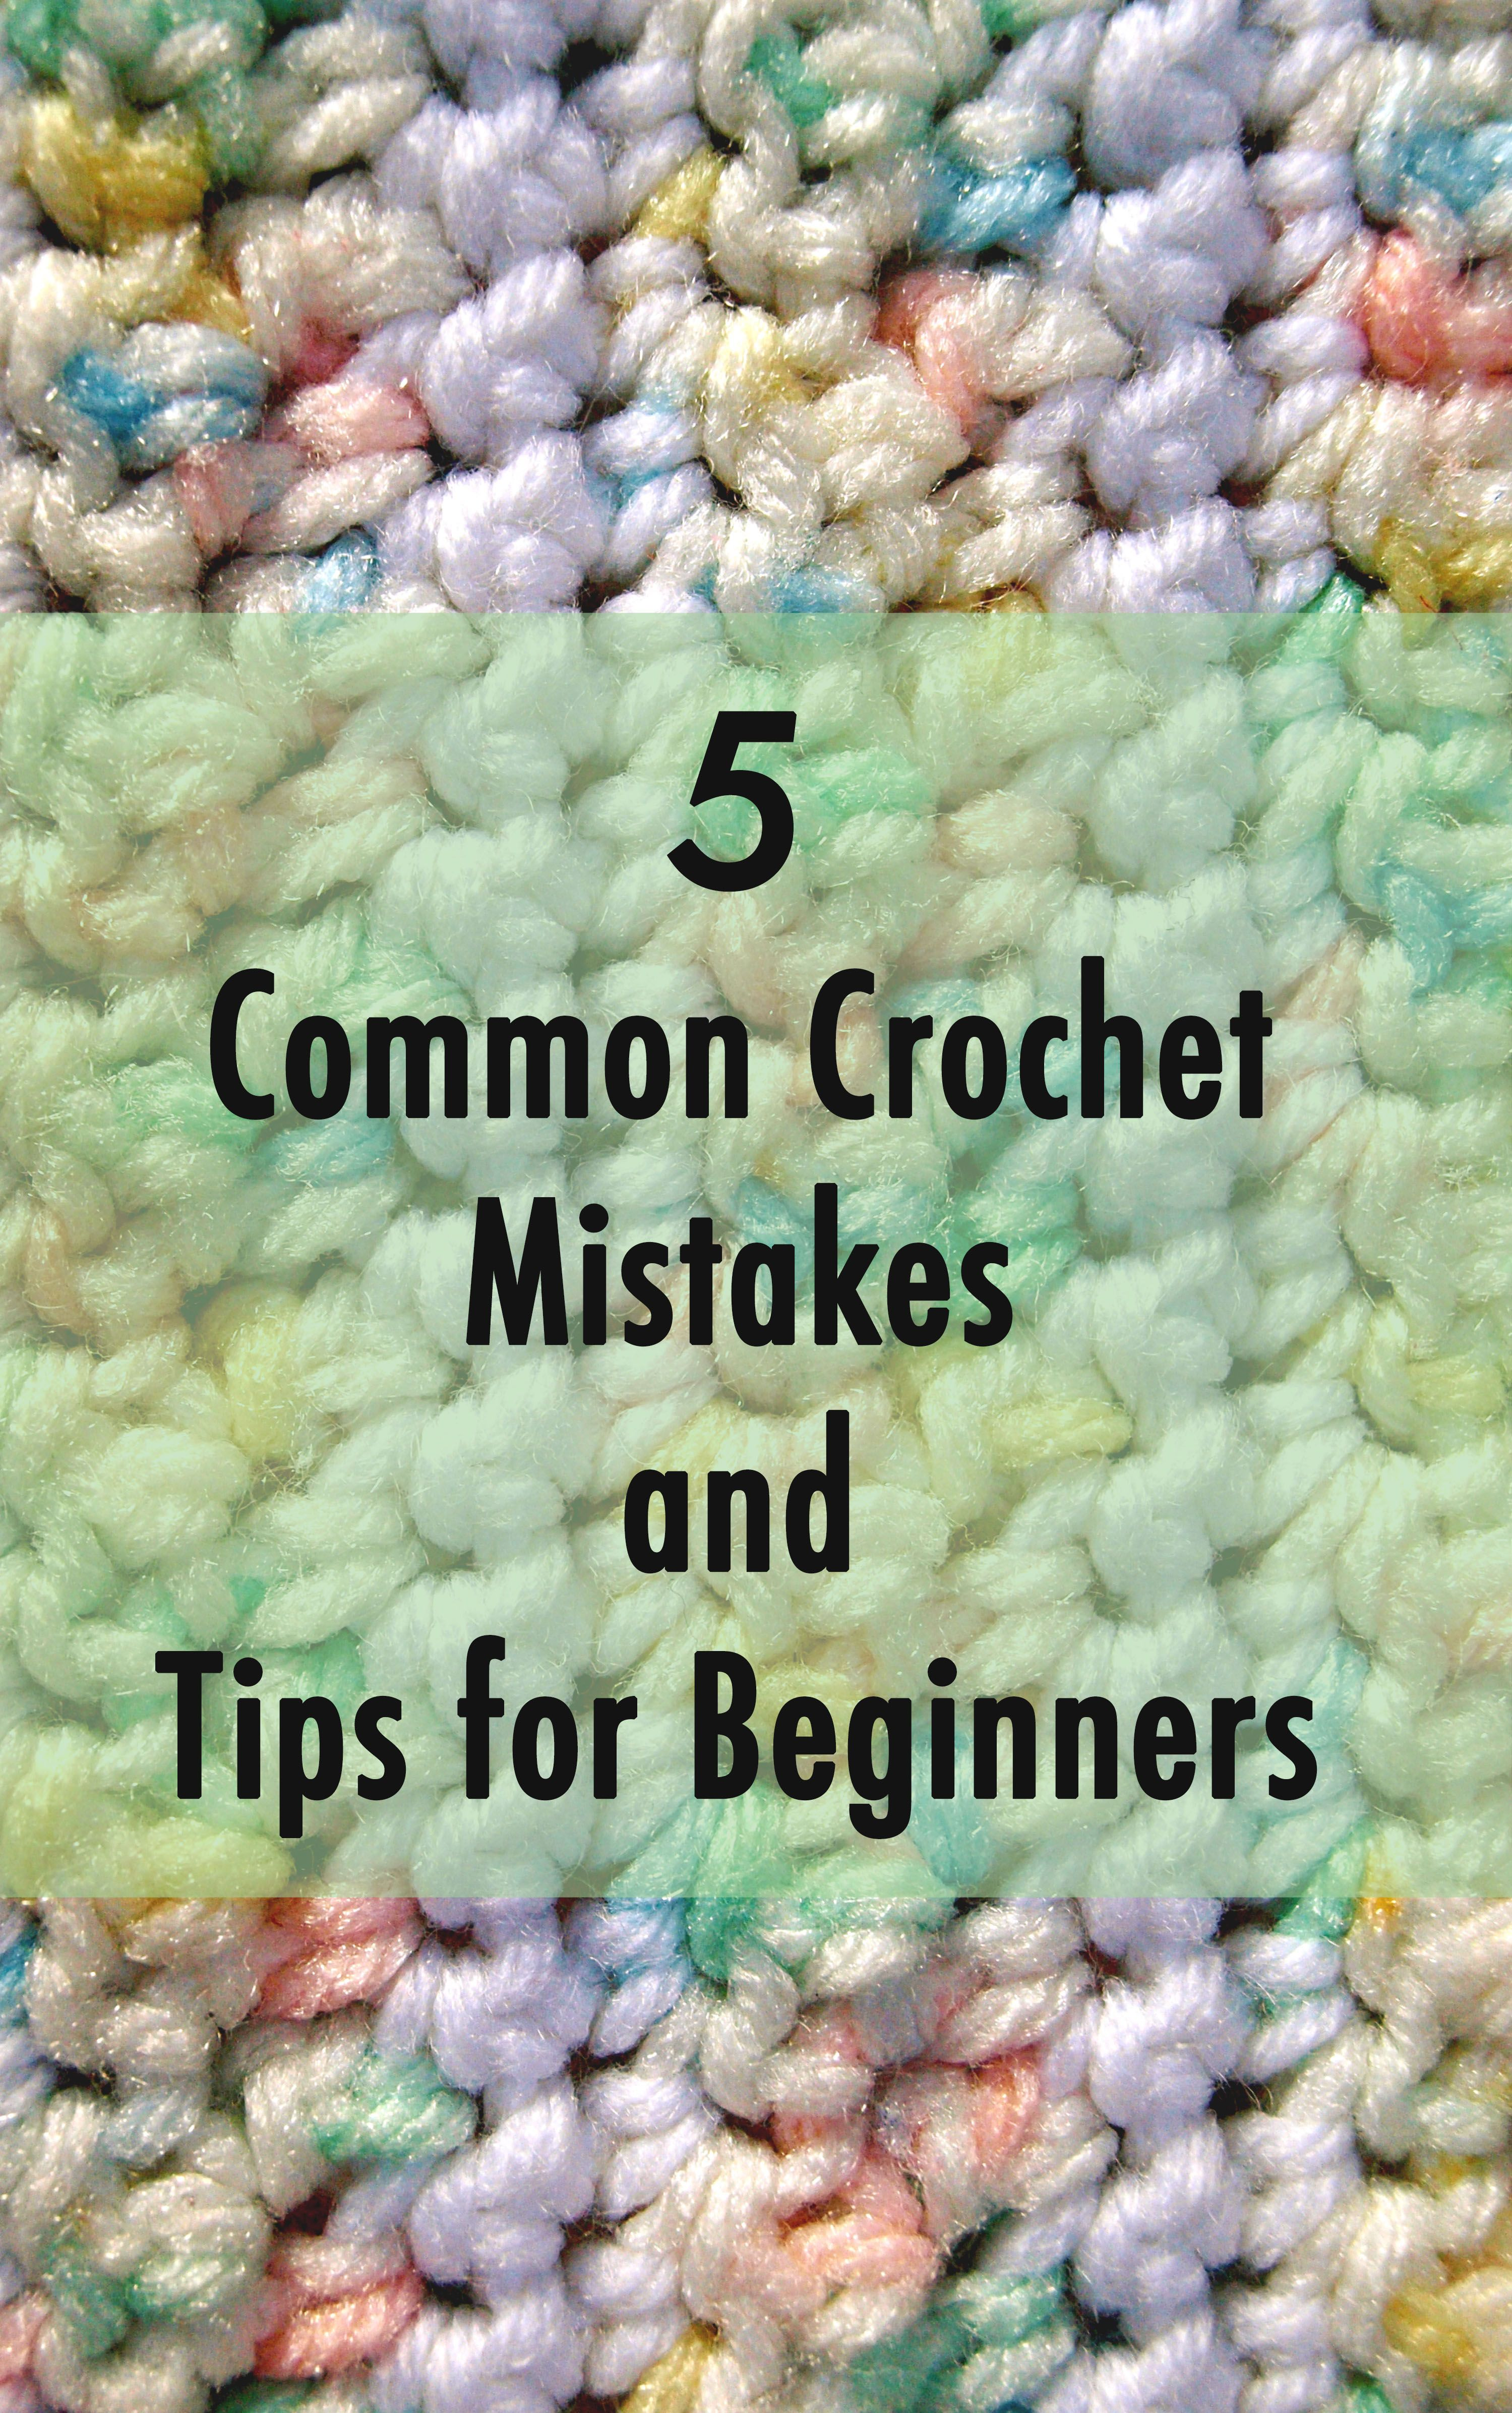 Knitting Styles For Beginners : Five common crochet mistakes and tips for beginners